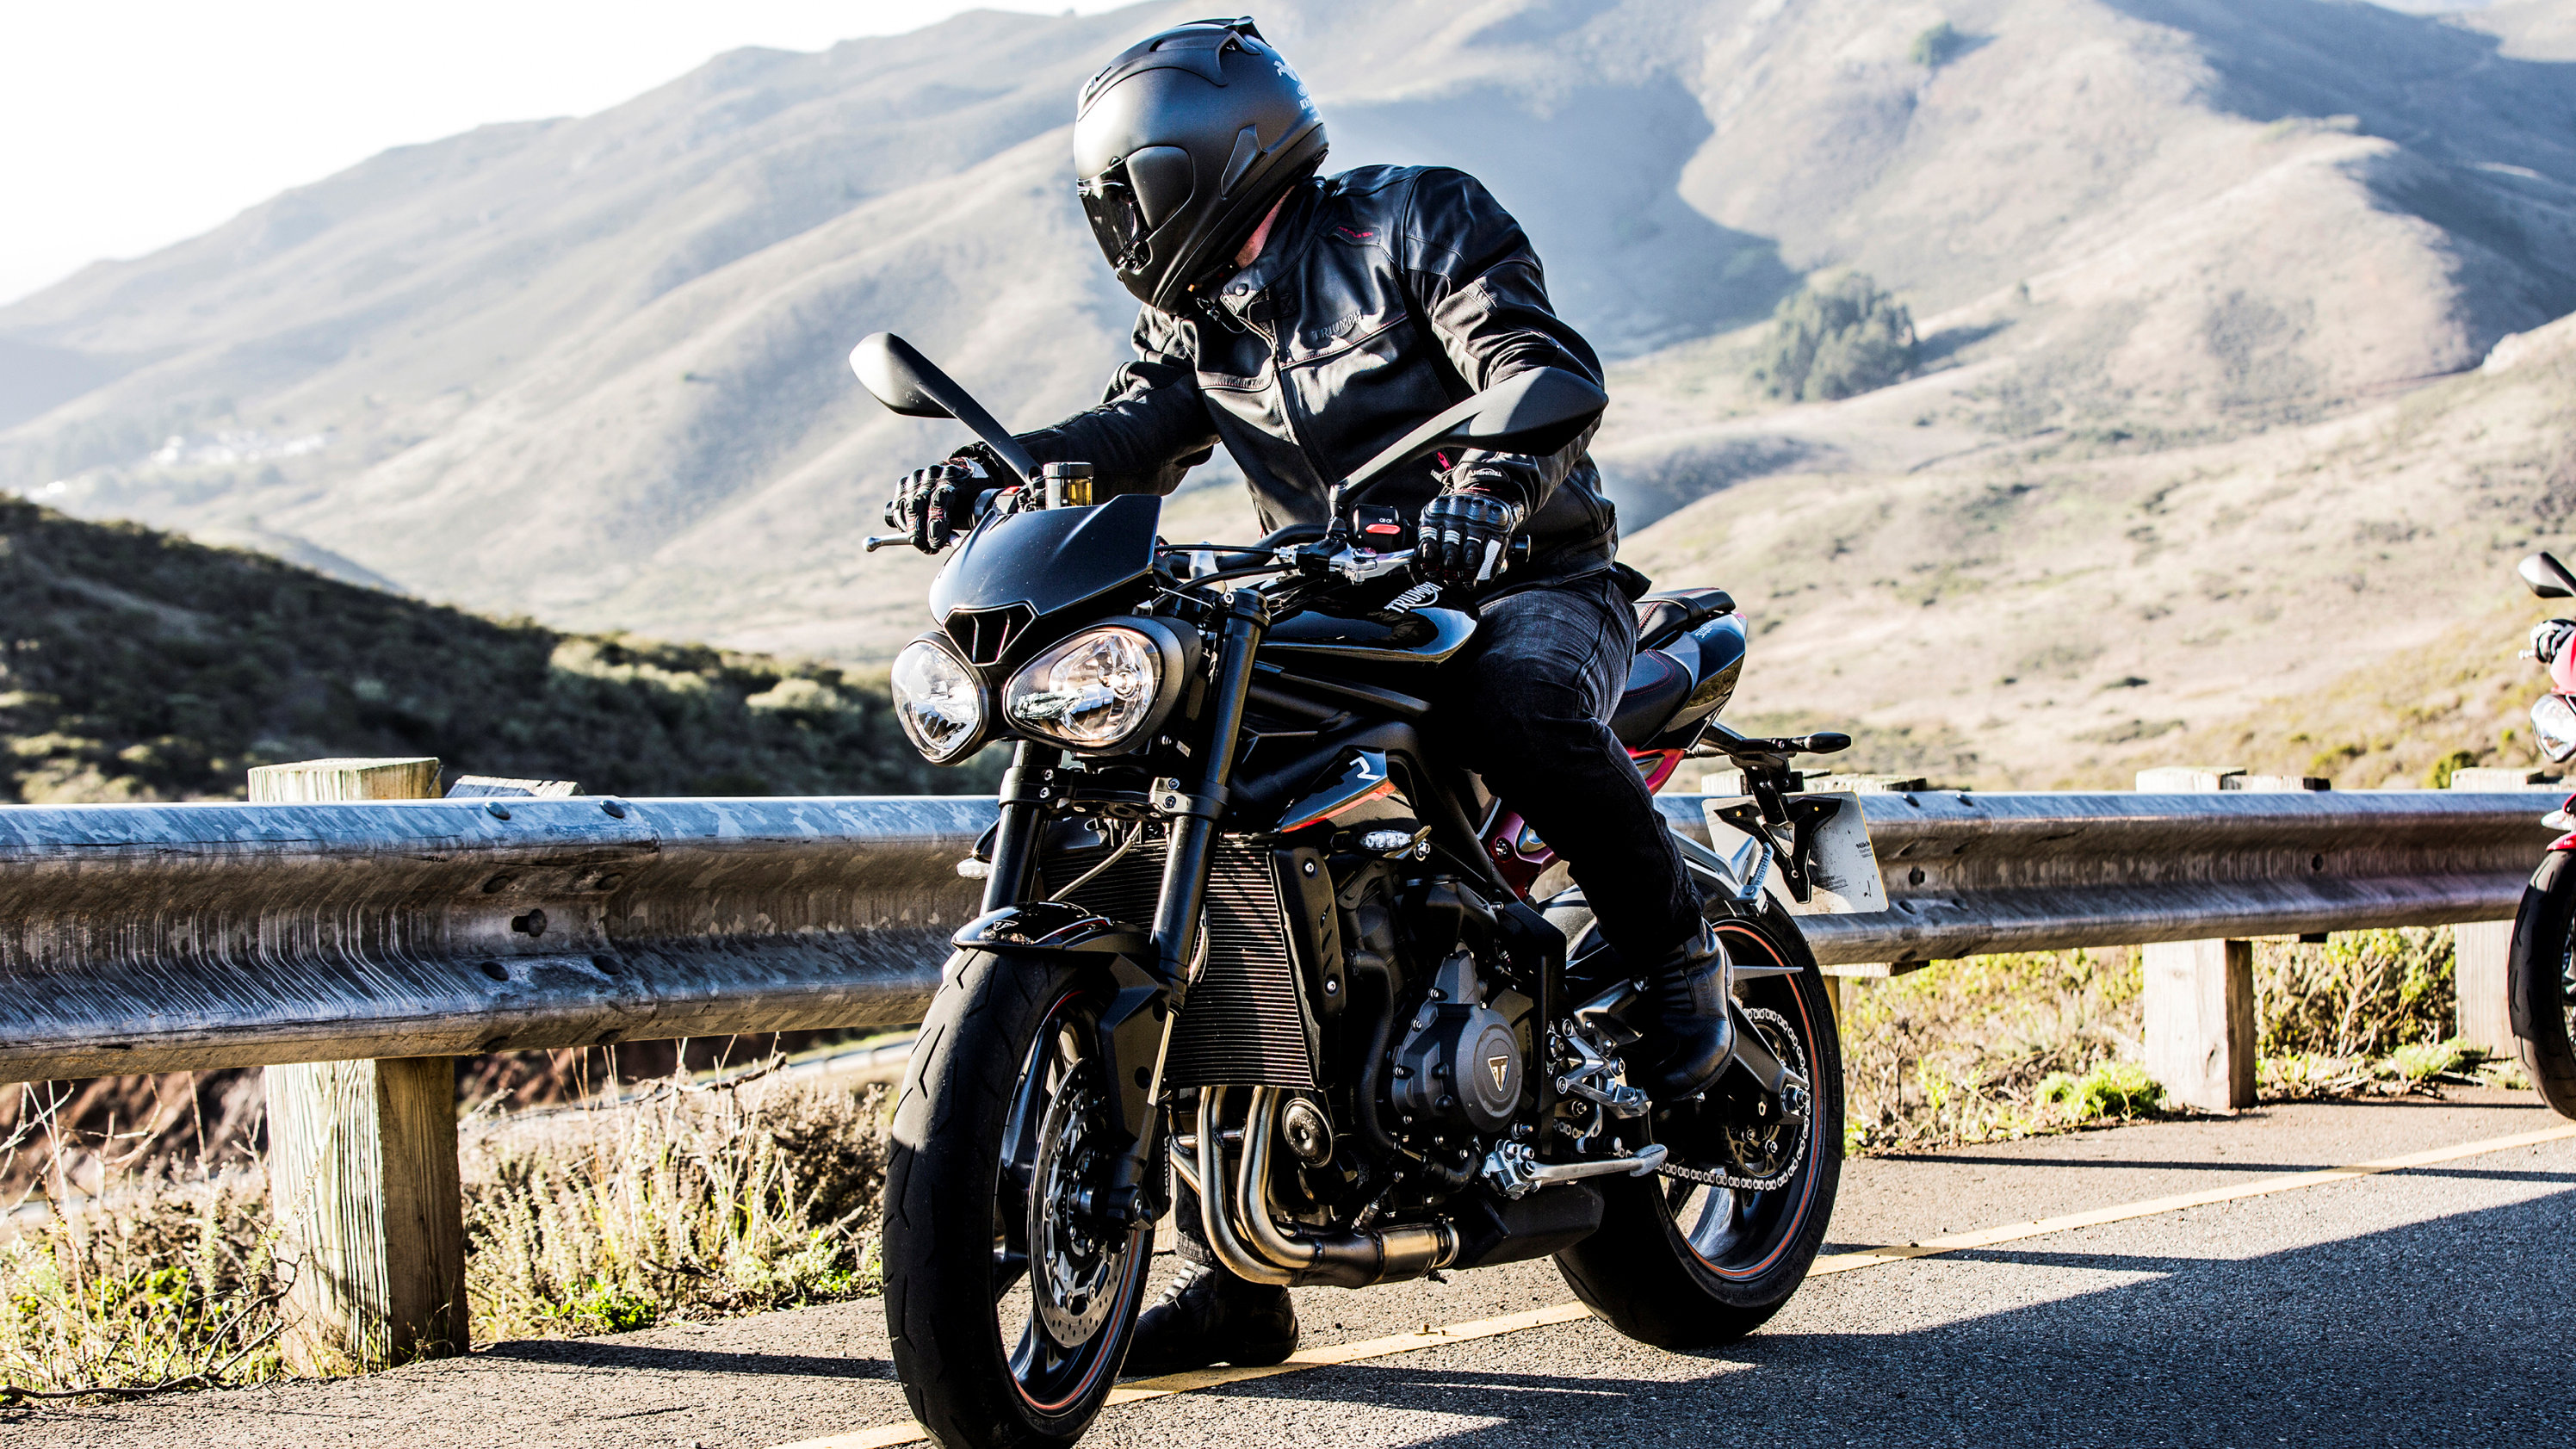 2018 Triumph Street Triple R Top Speed